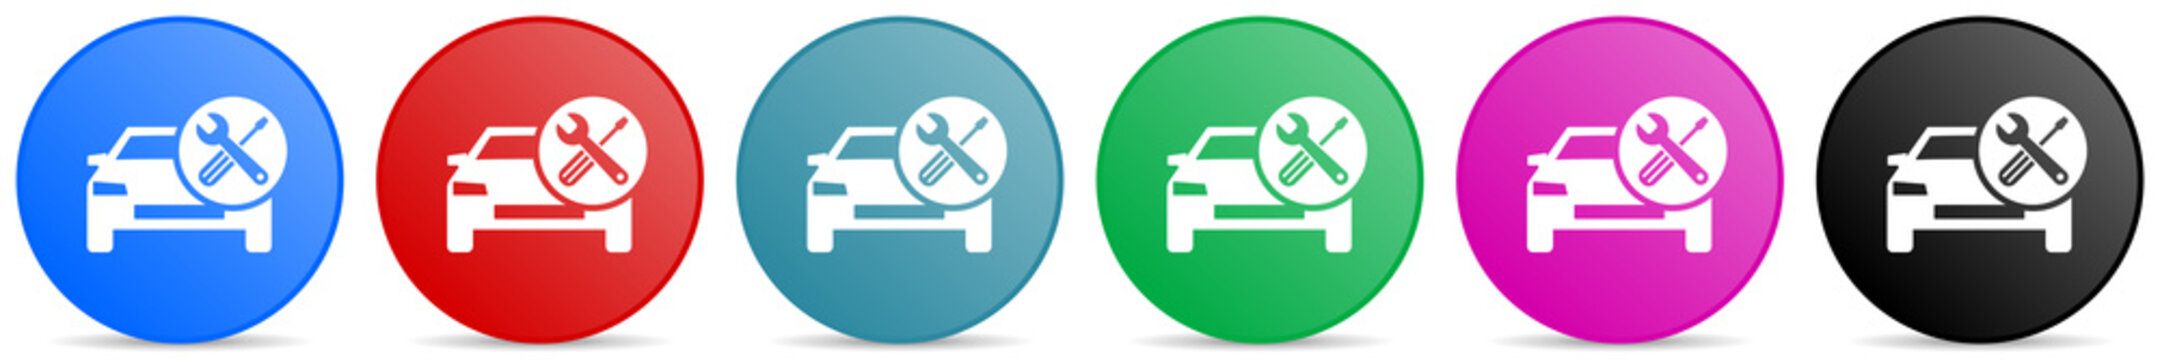 Auto service, car repair vector icons, set of circle gradient buttons in 6 colors options for webdesign and mobile applications